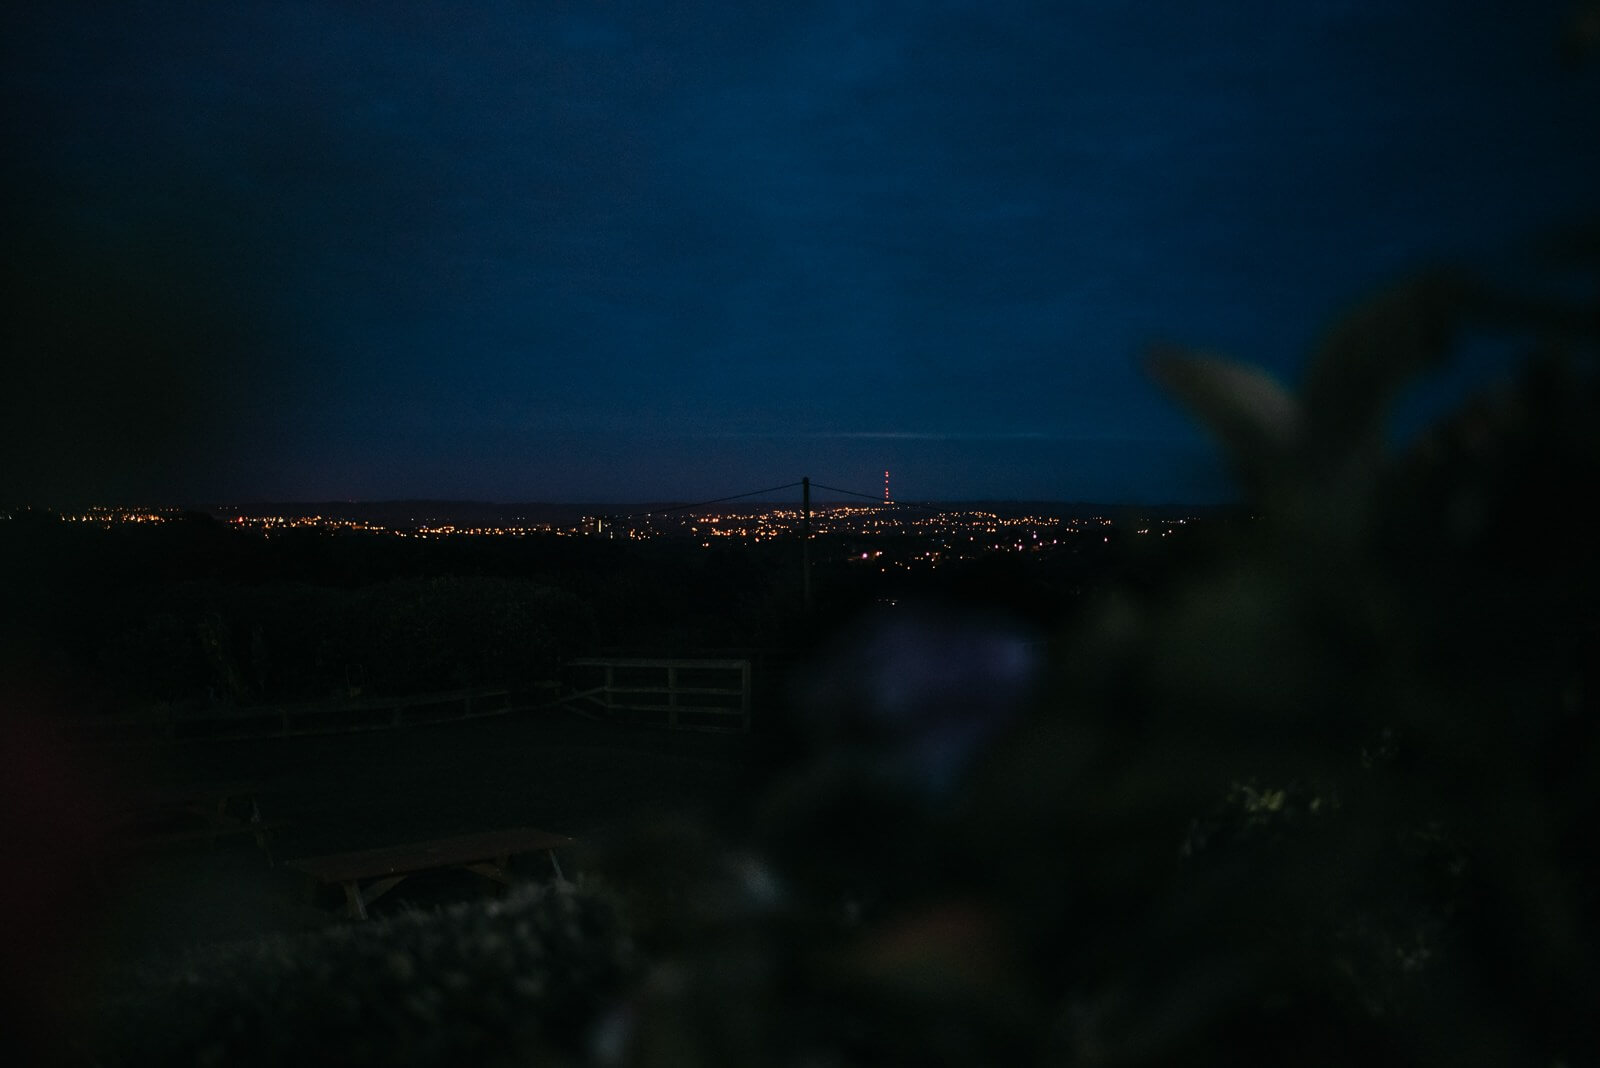 Night time photograph of Cardiff skyline with Severn Bridge in the distance taken from Ty Mawr wedding